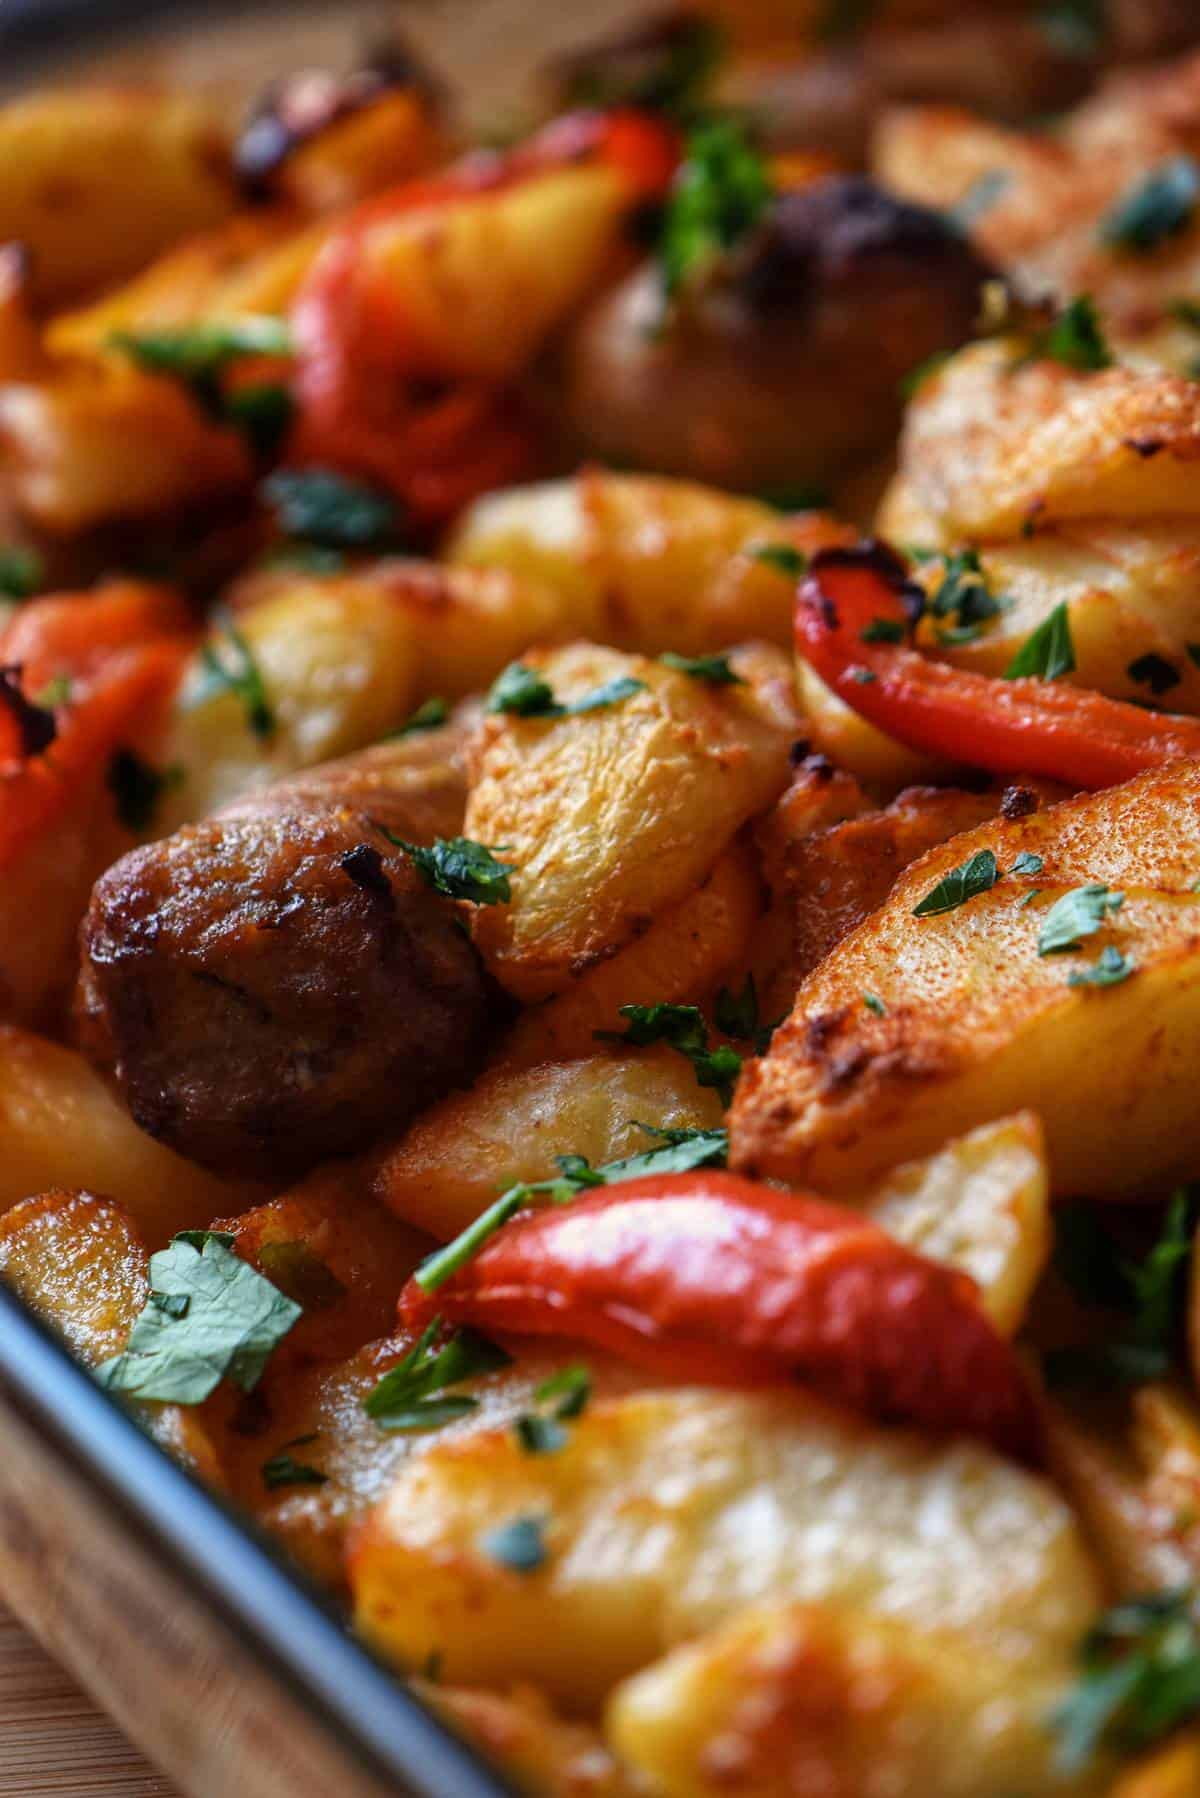 Roasted sausages and vegetables in a baking dish.